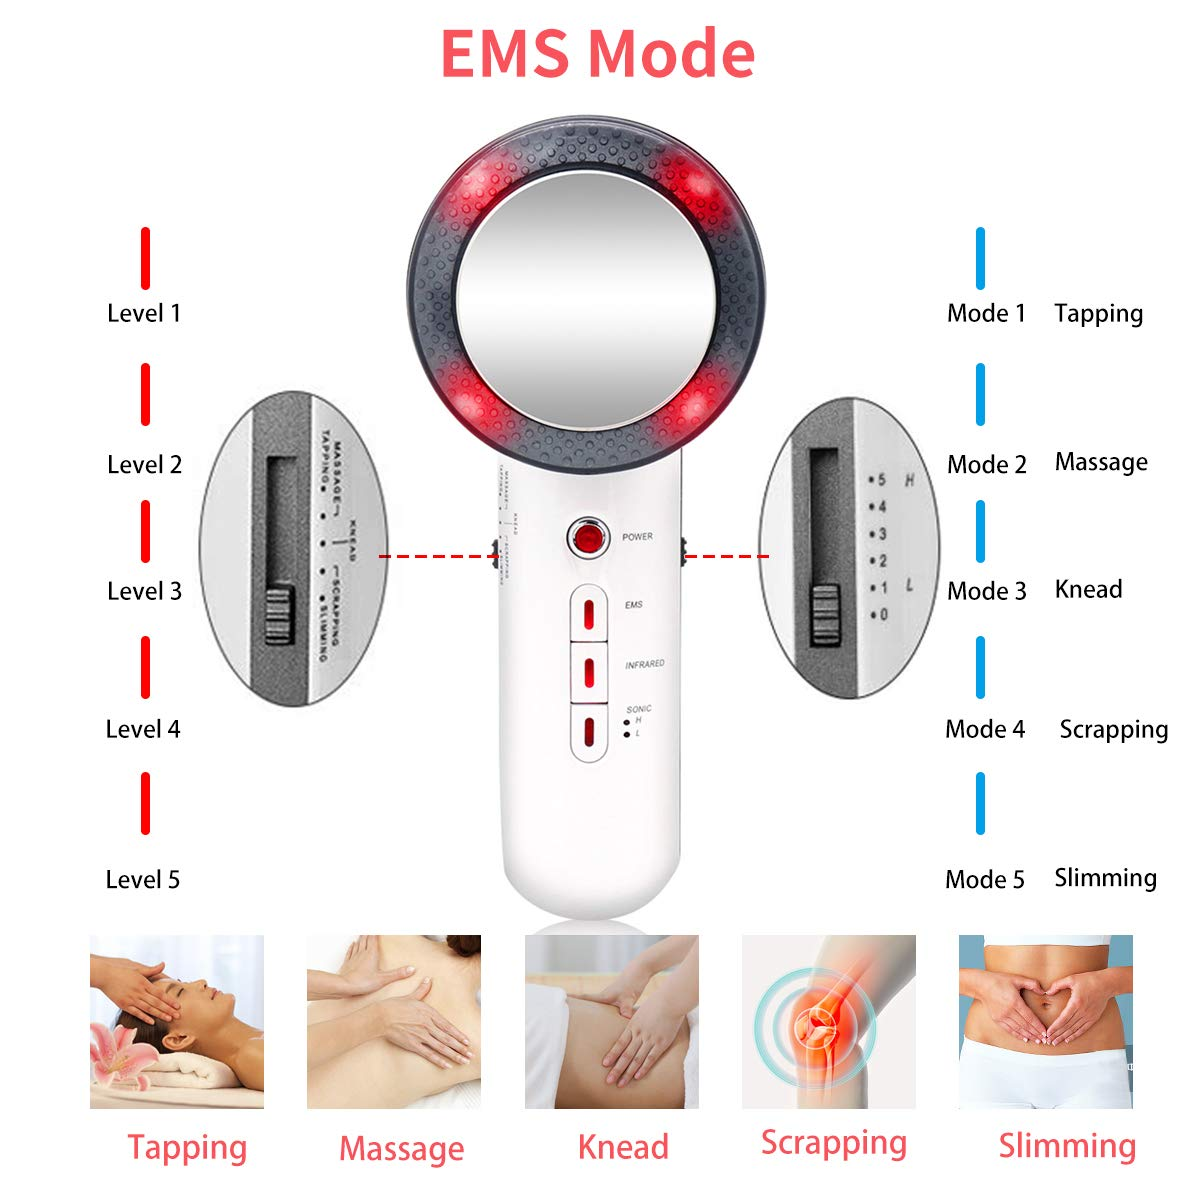 Body Sliming Machine EMS Fat Remove Machine Infared Weight Loss Skin Care Device for Women Men Use on Belly Stomach Arm Facial Abdominal Legs at Home